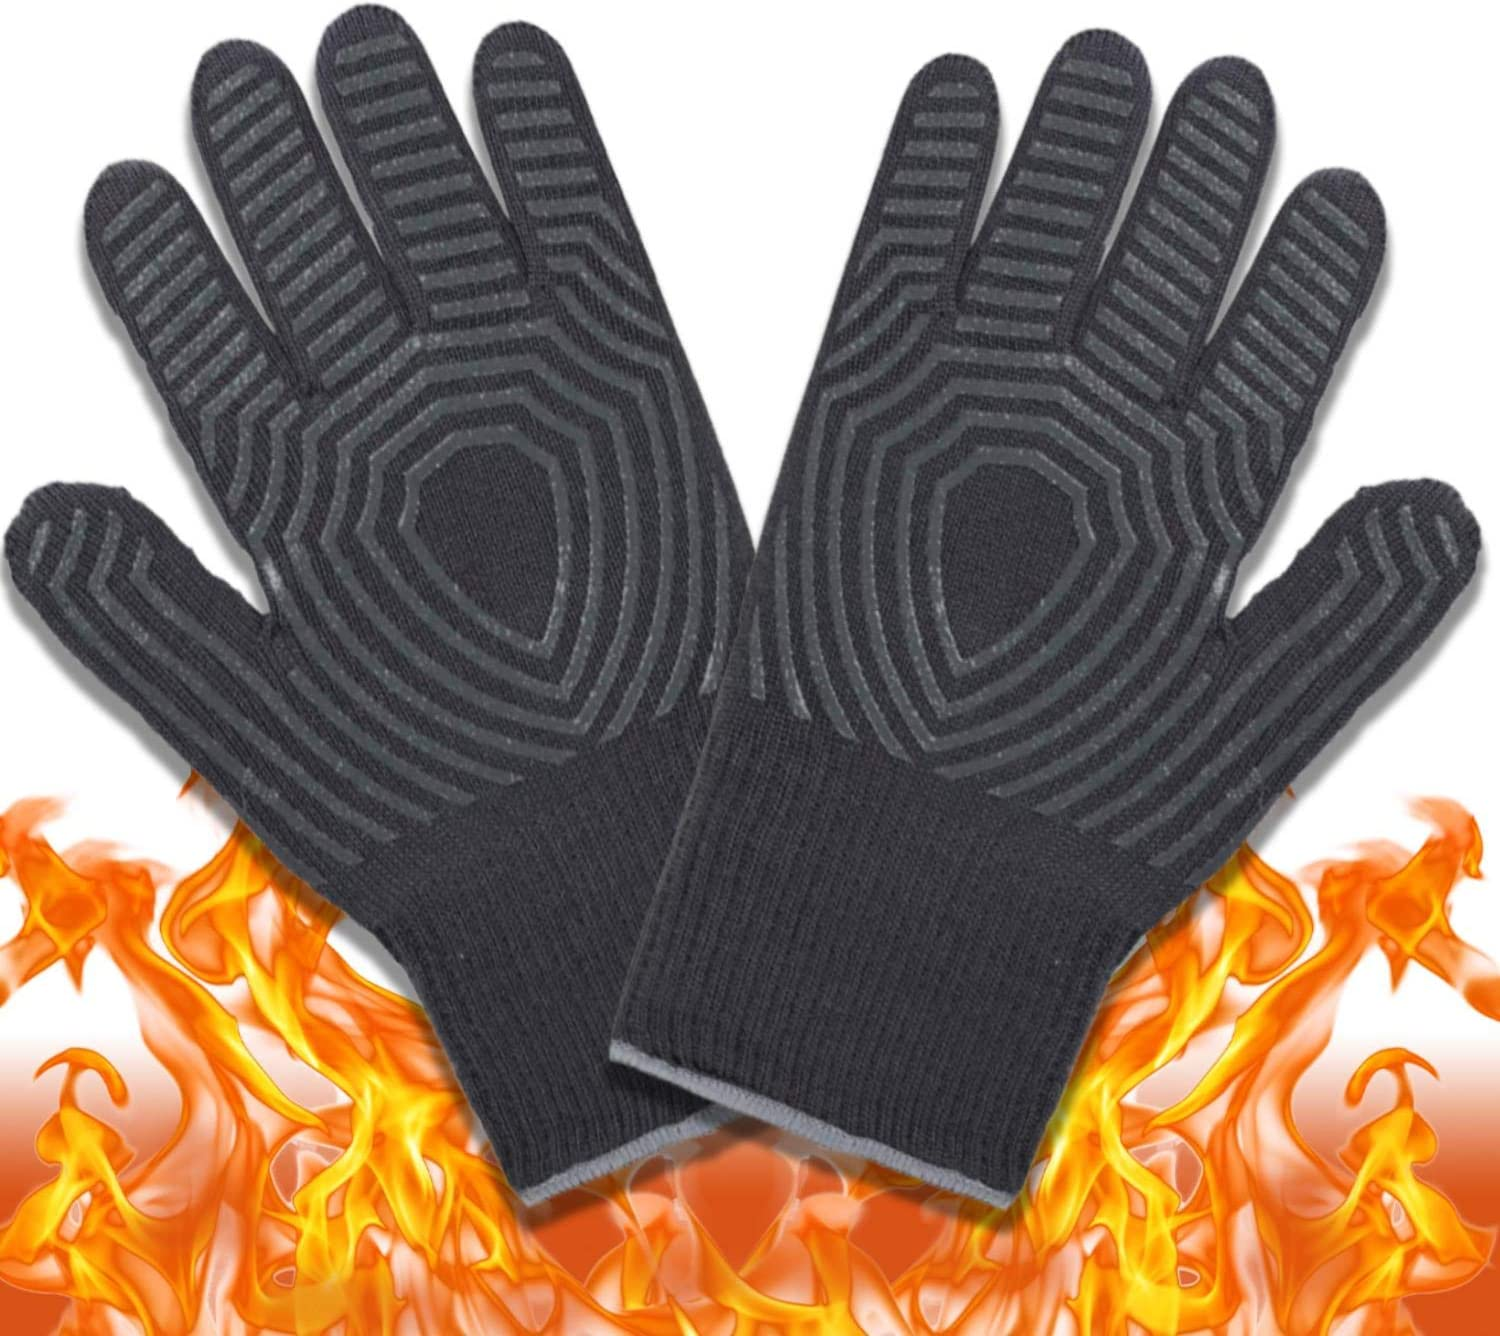 AZOKER BBQ Gloves - 932℉ Extreme Heat Resistant EN407 Certified - Silicone Non-Slip Cooking Gloves-Improved Oven Mitts-Oven Gloves for Cooking, Welding-14 (One Size Fits Most, Grey)